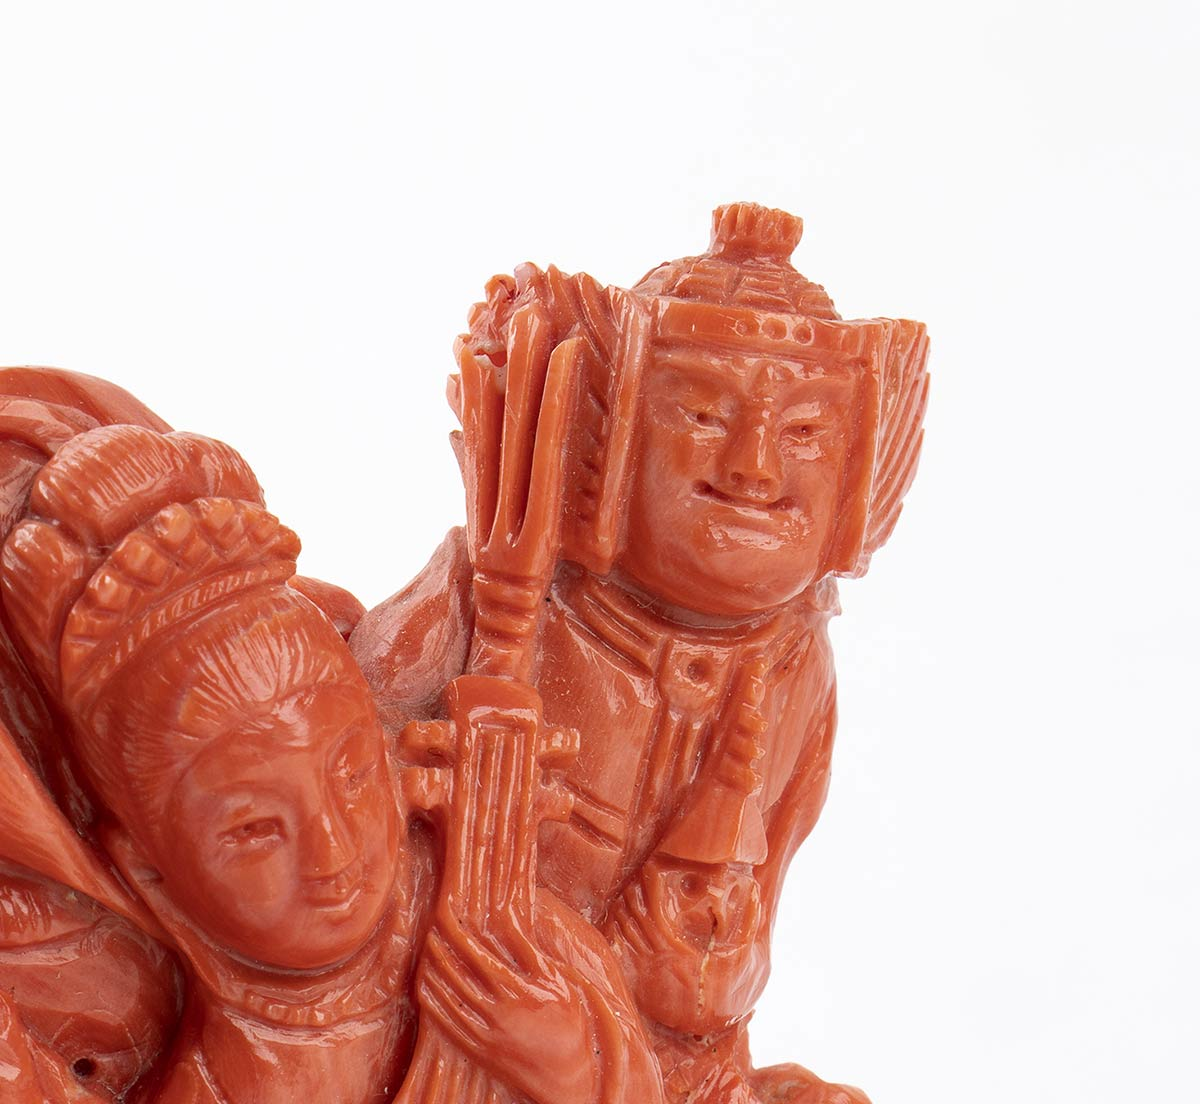 A Cerasuolo coral carving - China, early 20th Century - Image 3 of 7